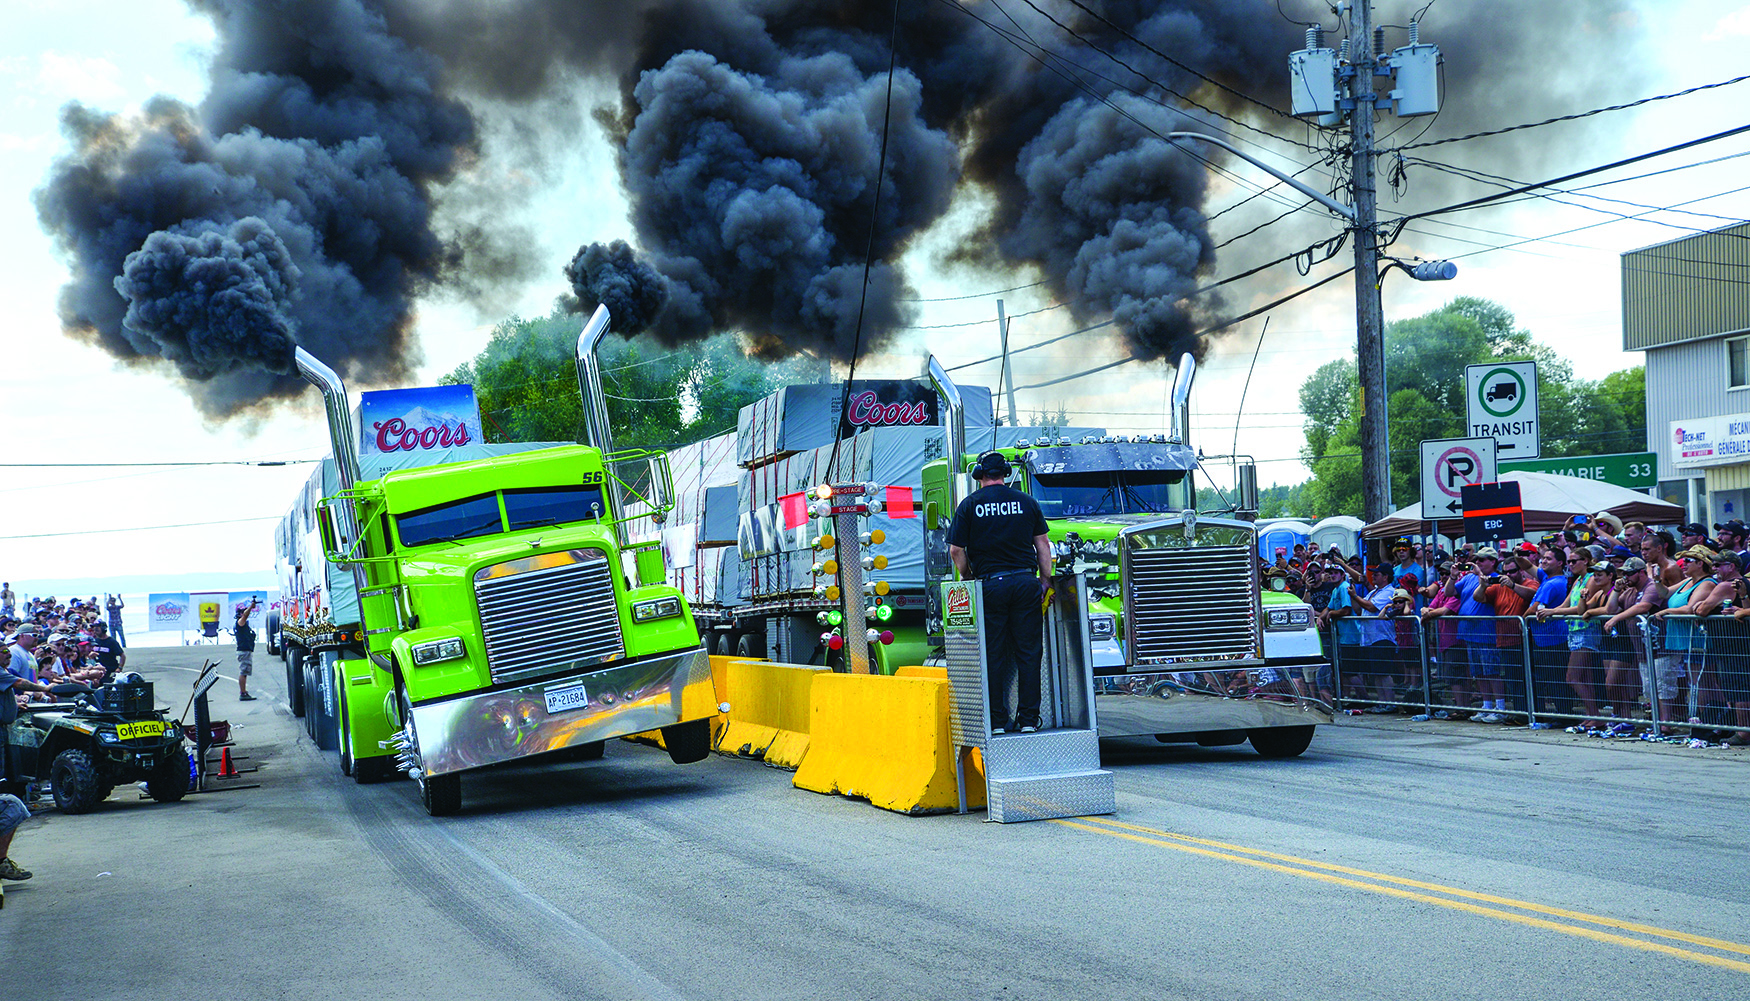 The truck races of Notre-Dame-du-Nord